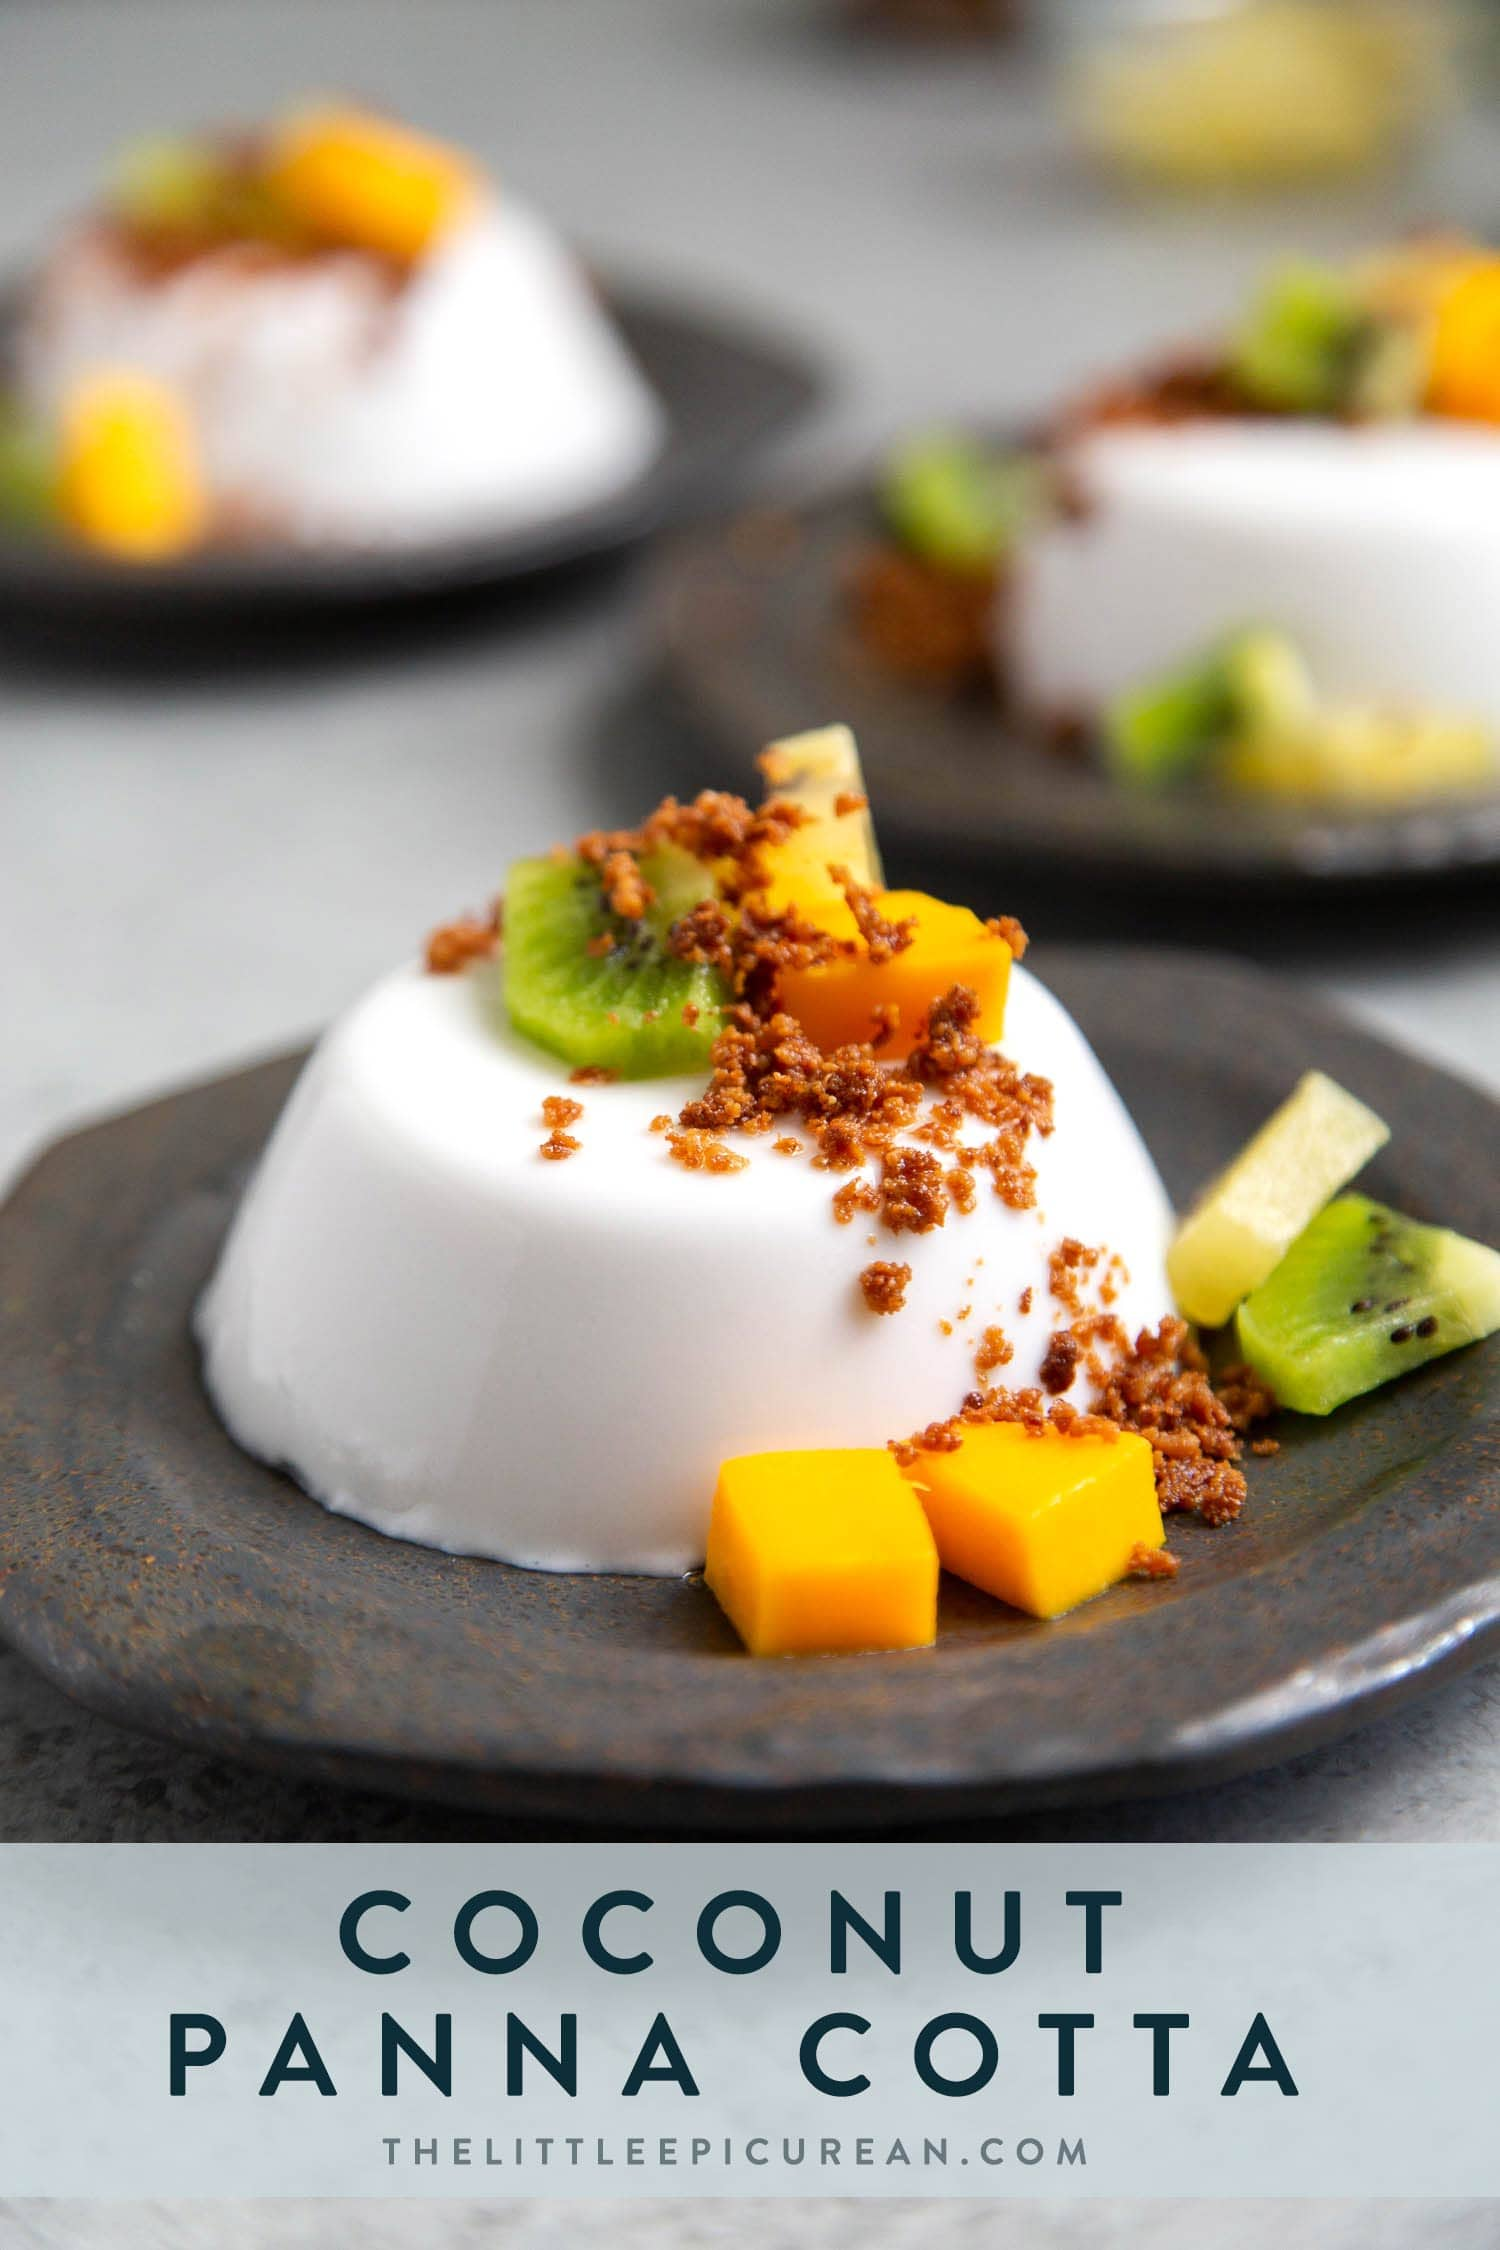 Coconut Panna Cotta served with latik and fresh fruits. Latik is from the Philippines. It is fried coconut milk curds.